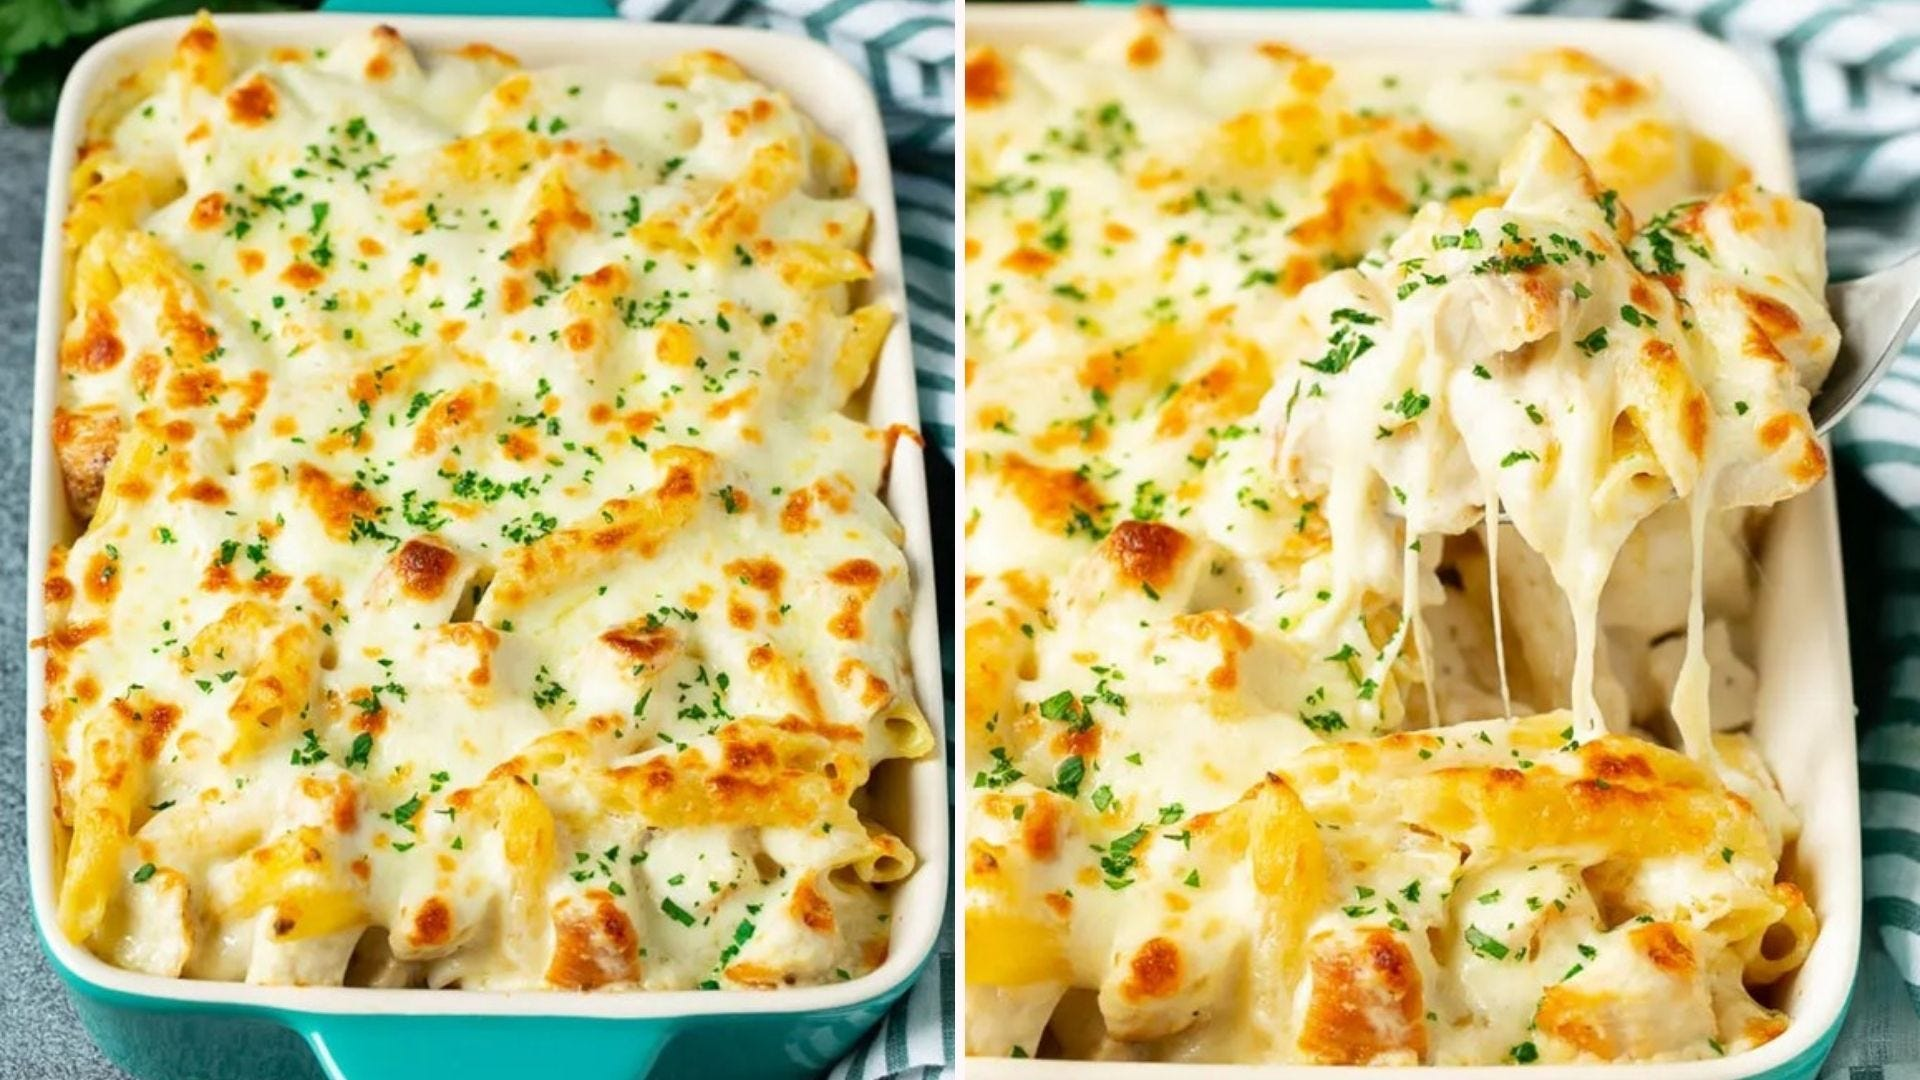 Two side by side images: The left image is of a creamy chicken alfredo baked meal in a turquoise casserole dish topped with melted cheese and parsley, and the right image is of a fork full of the meal being taken with stretched cheese melting off the sides of the utensil.